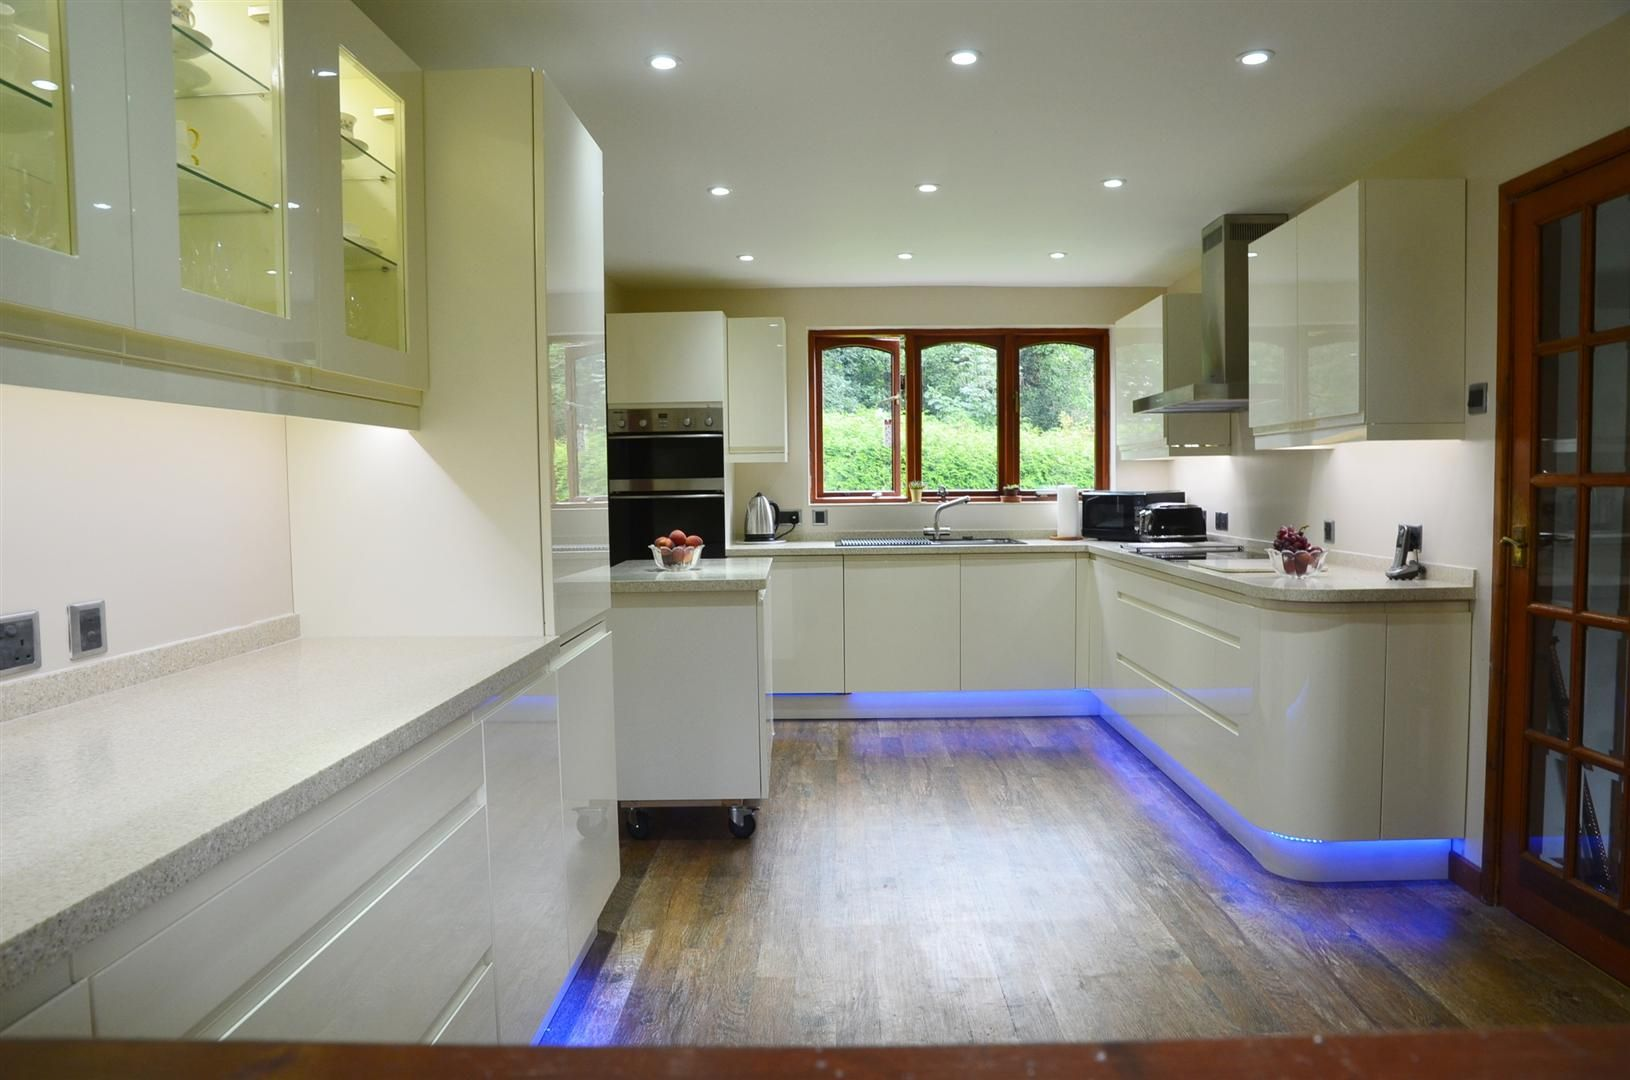 led lighting kitchen. energy efficient led downlights combined with colour changing strip can really add to kitchen aesthetic you desire products used rgb light kit led lighting